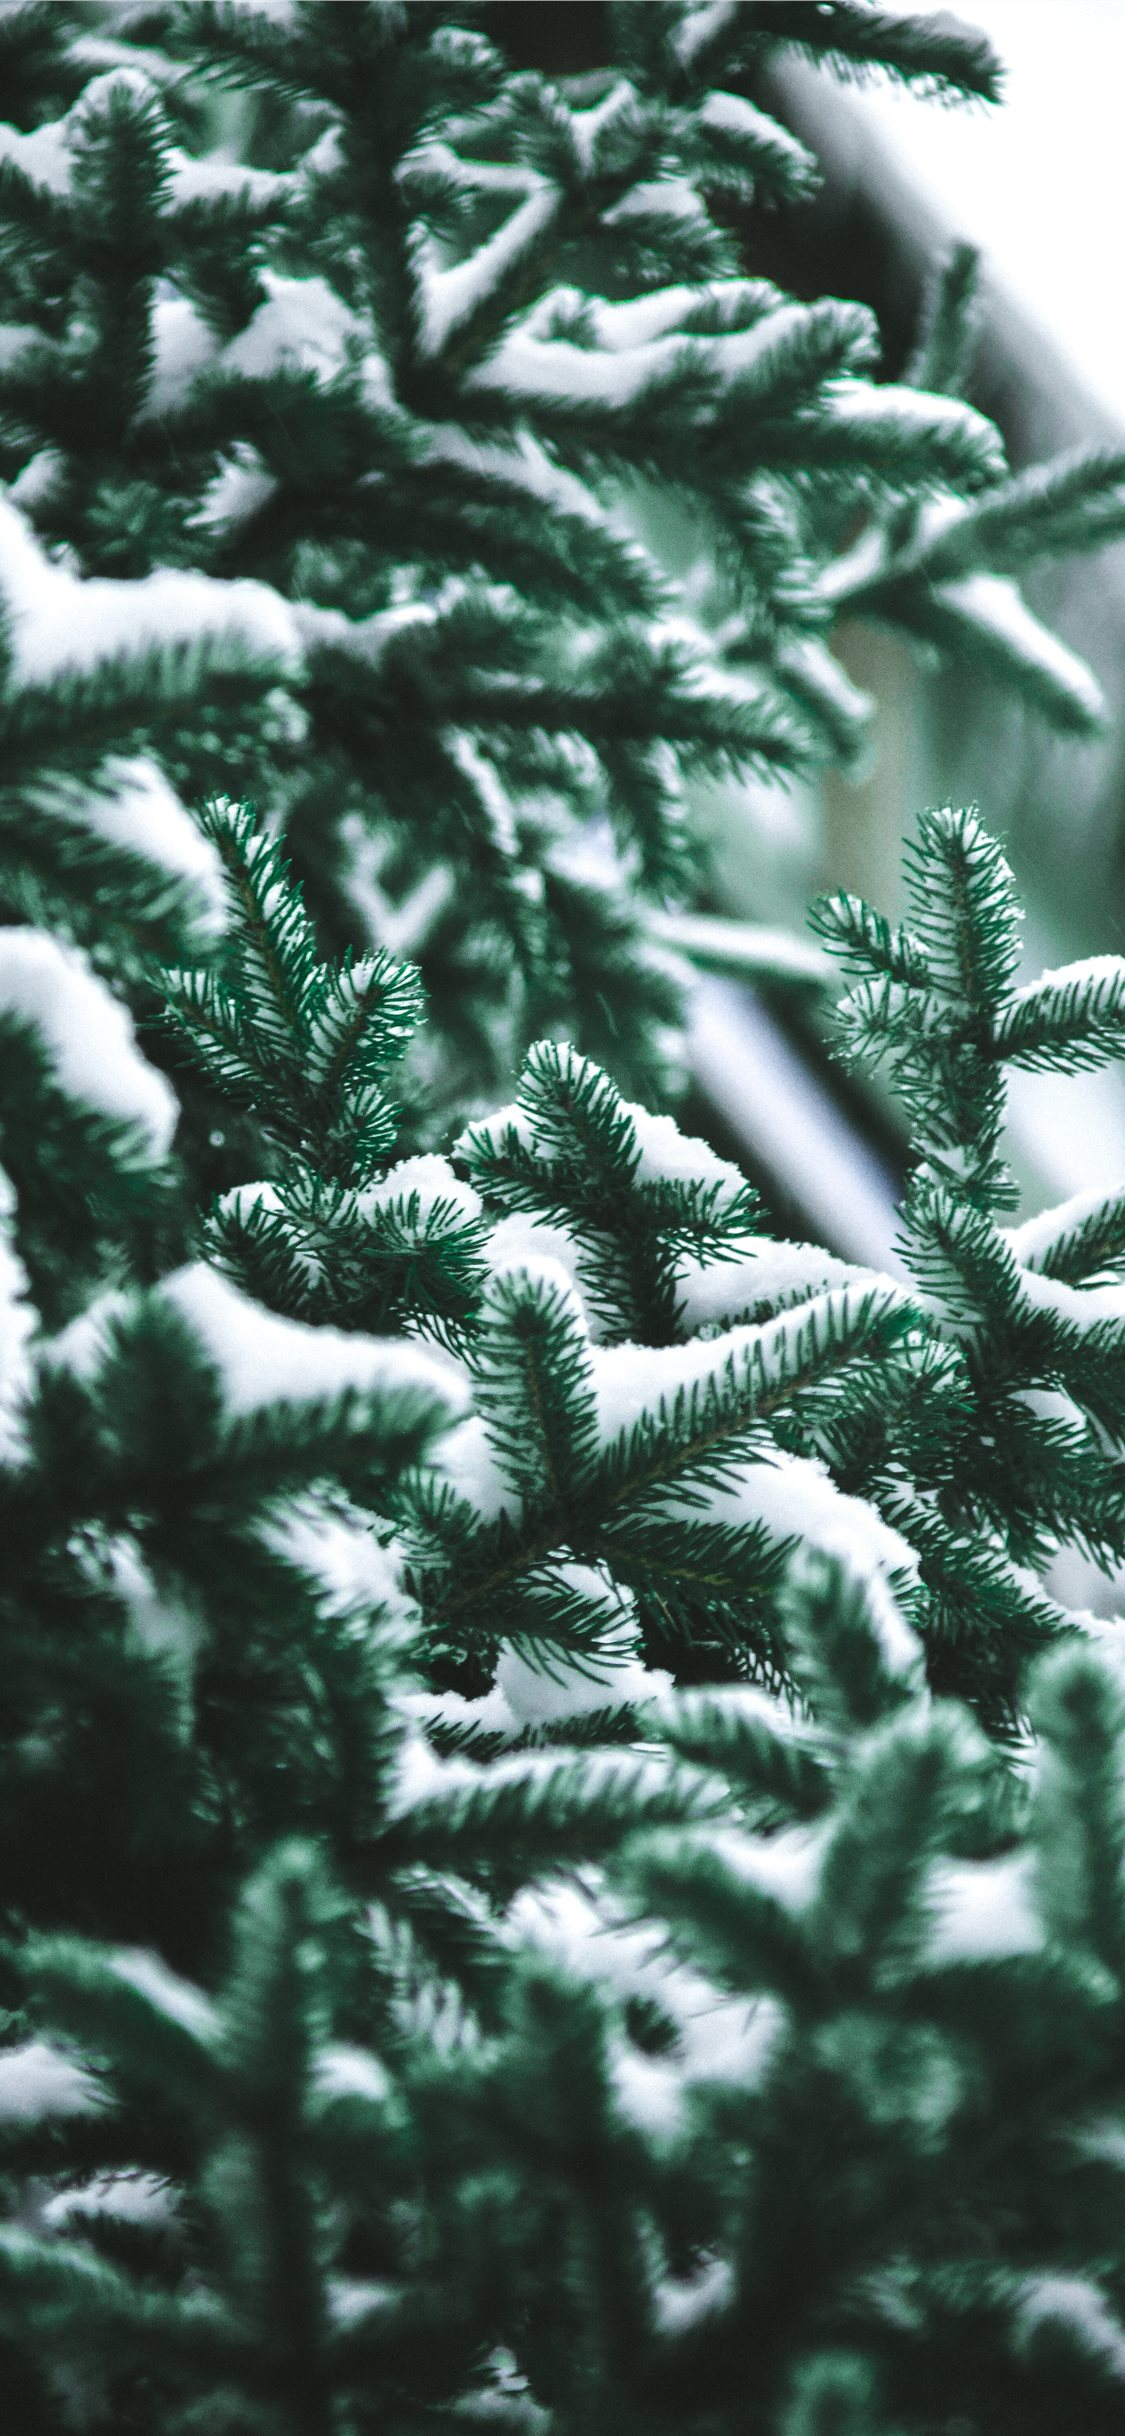 Close Up Photography Of Snow Covered Green Pine Tr Iphone